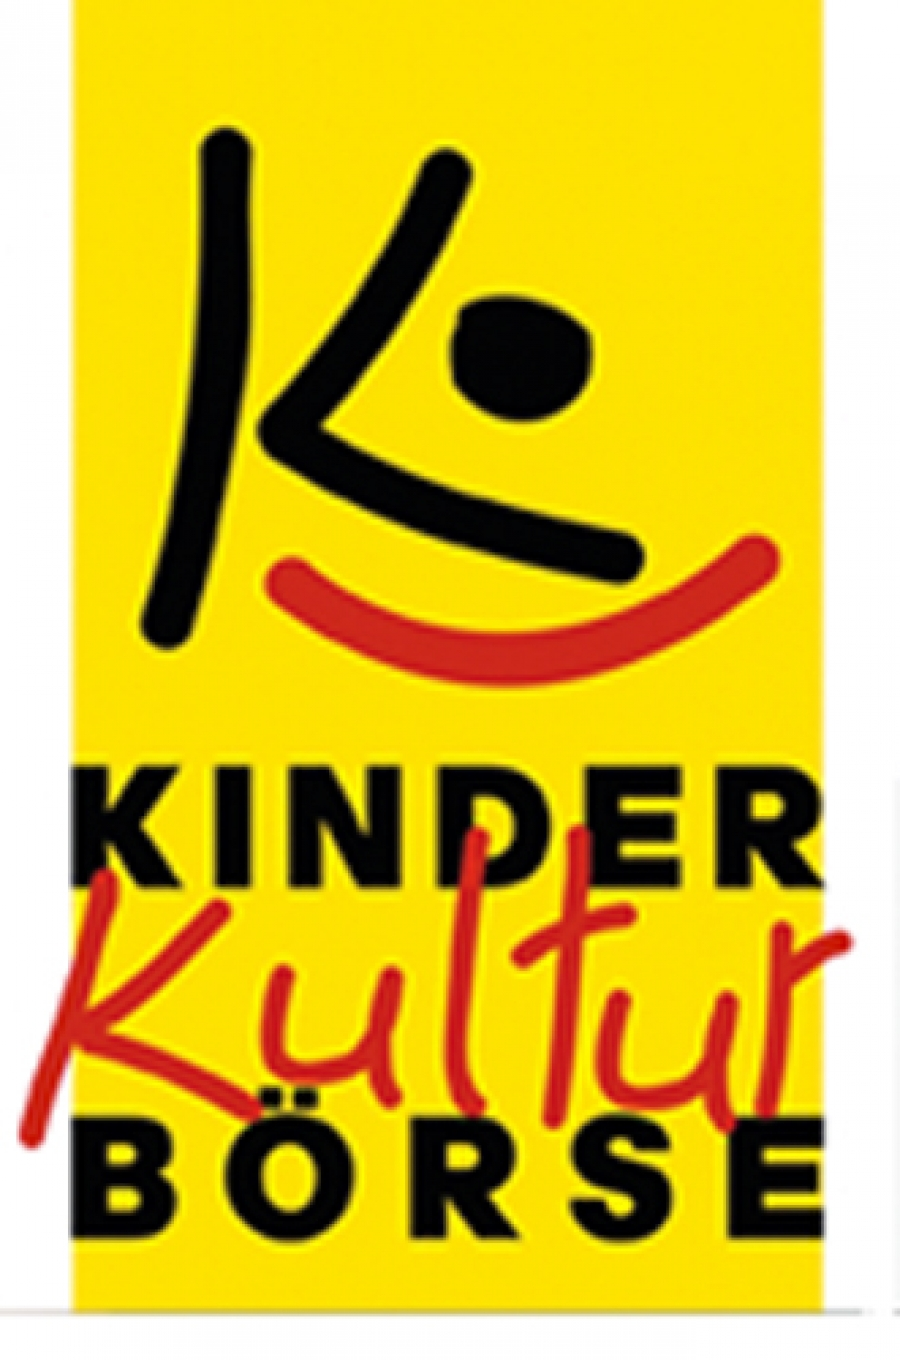 19. Kinderkulturbörse in Hannover am 17. und 18.April 2018